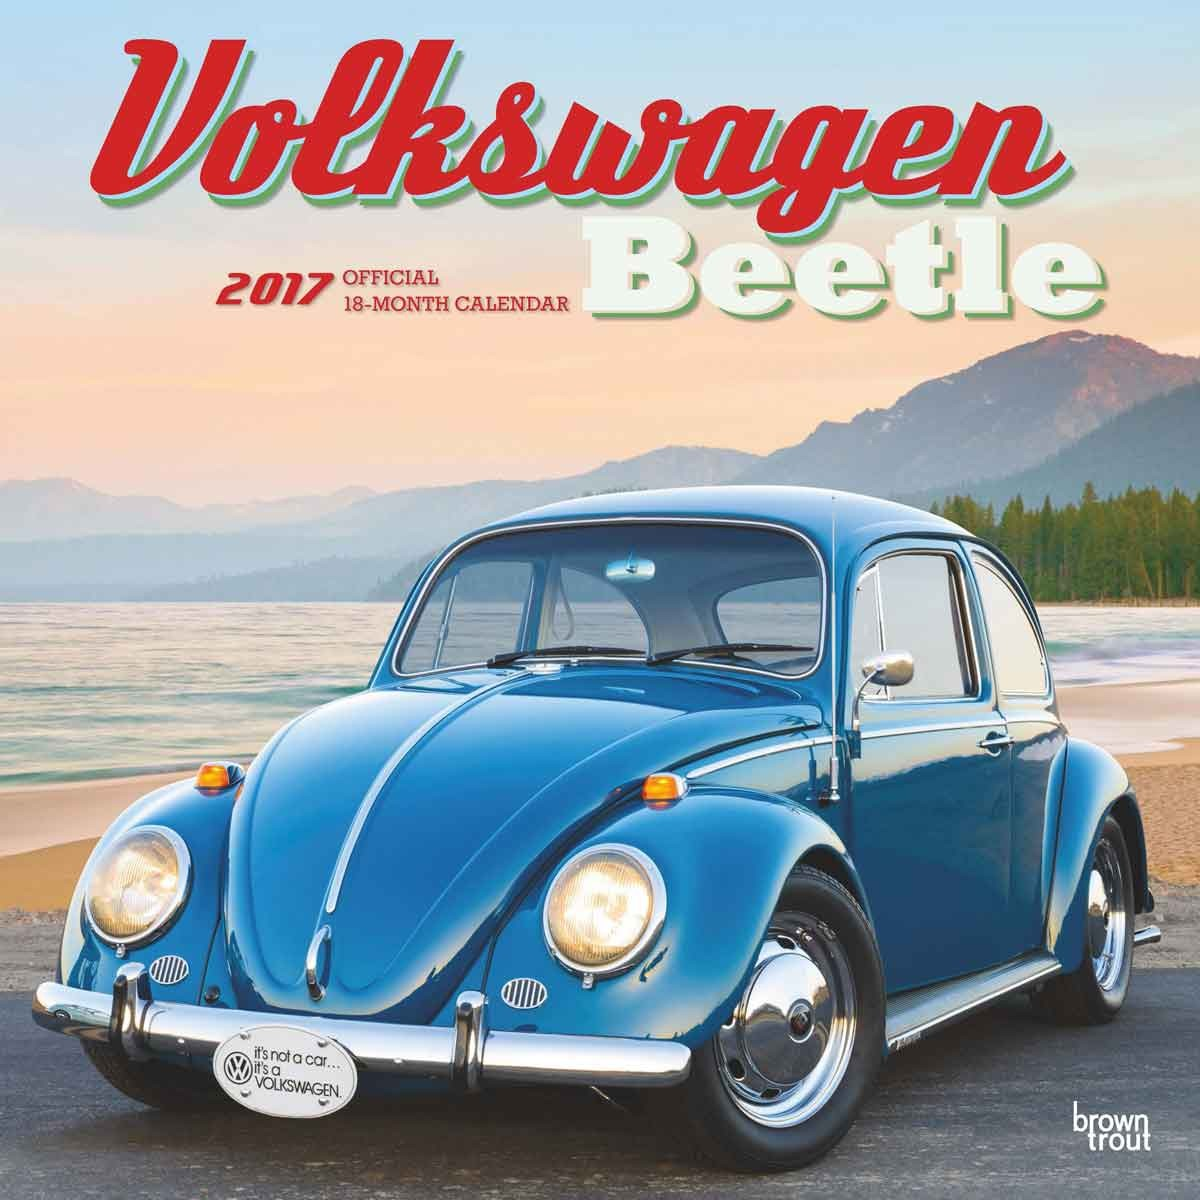 Volkswagen - Beetle - Calendars 2019 on UKposters/EuroPosters